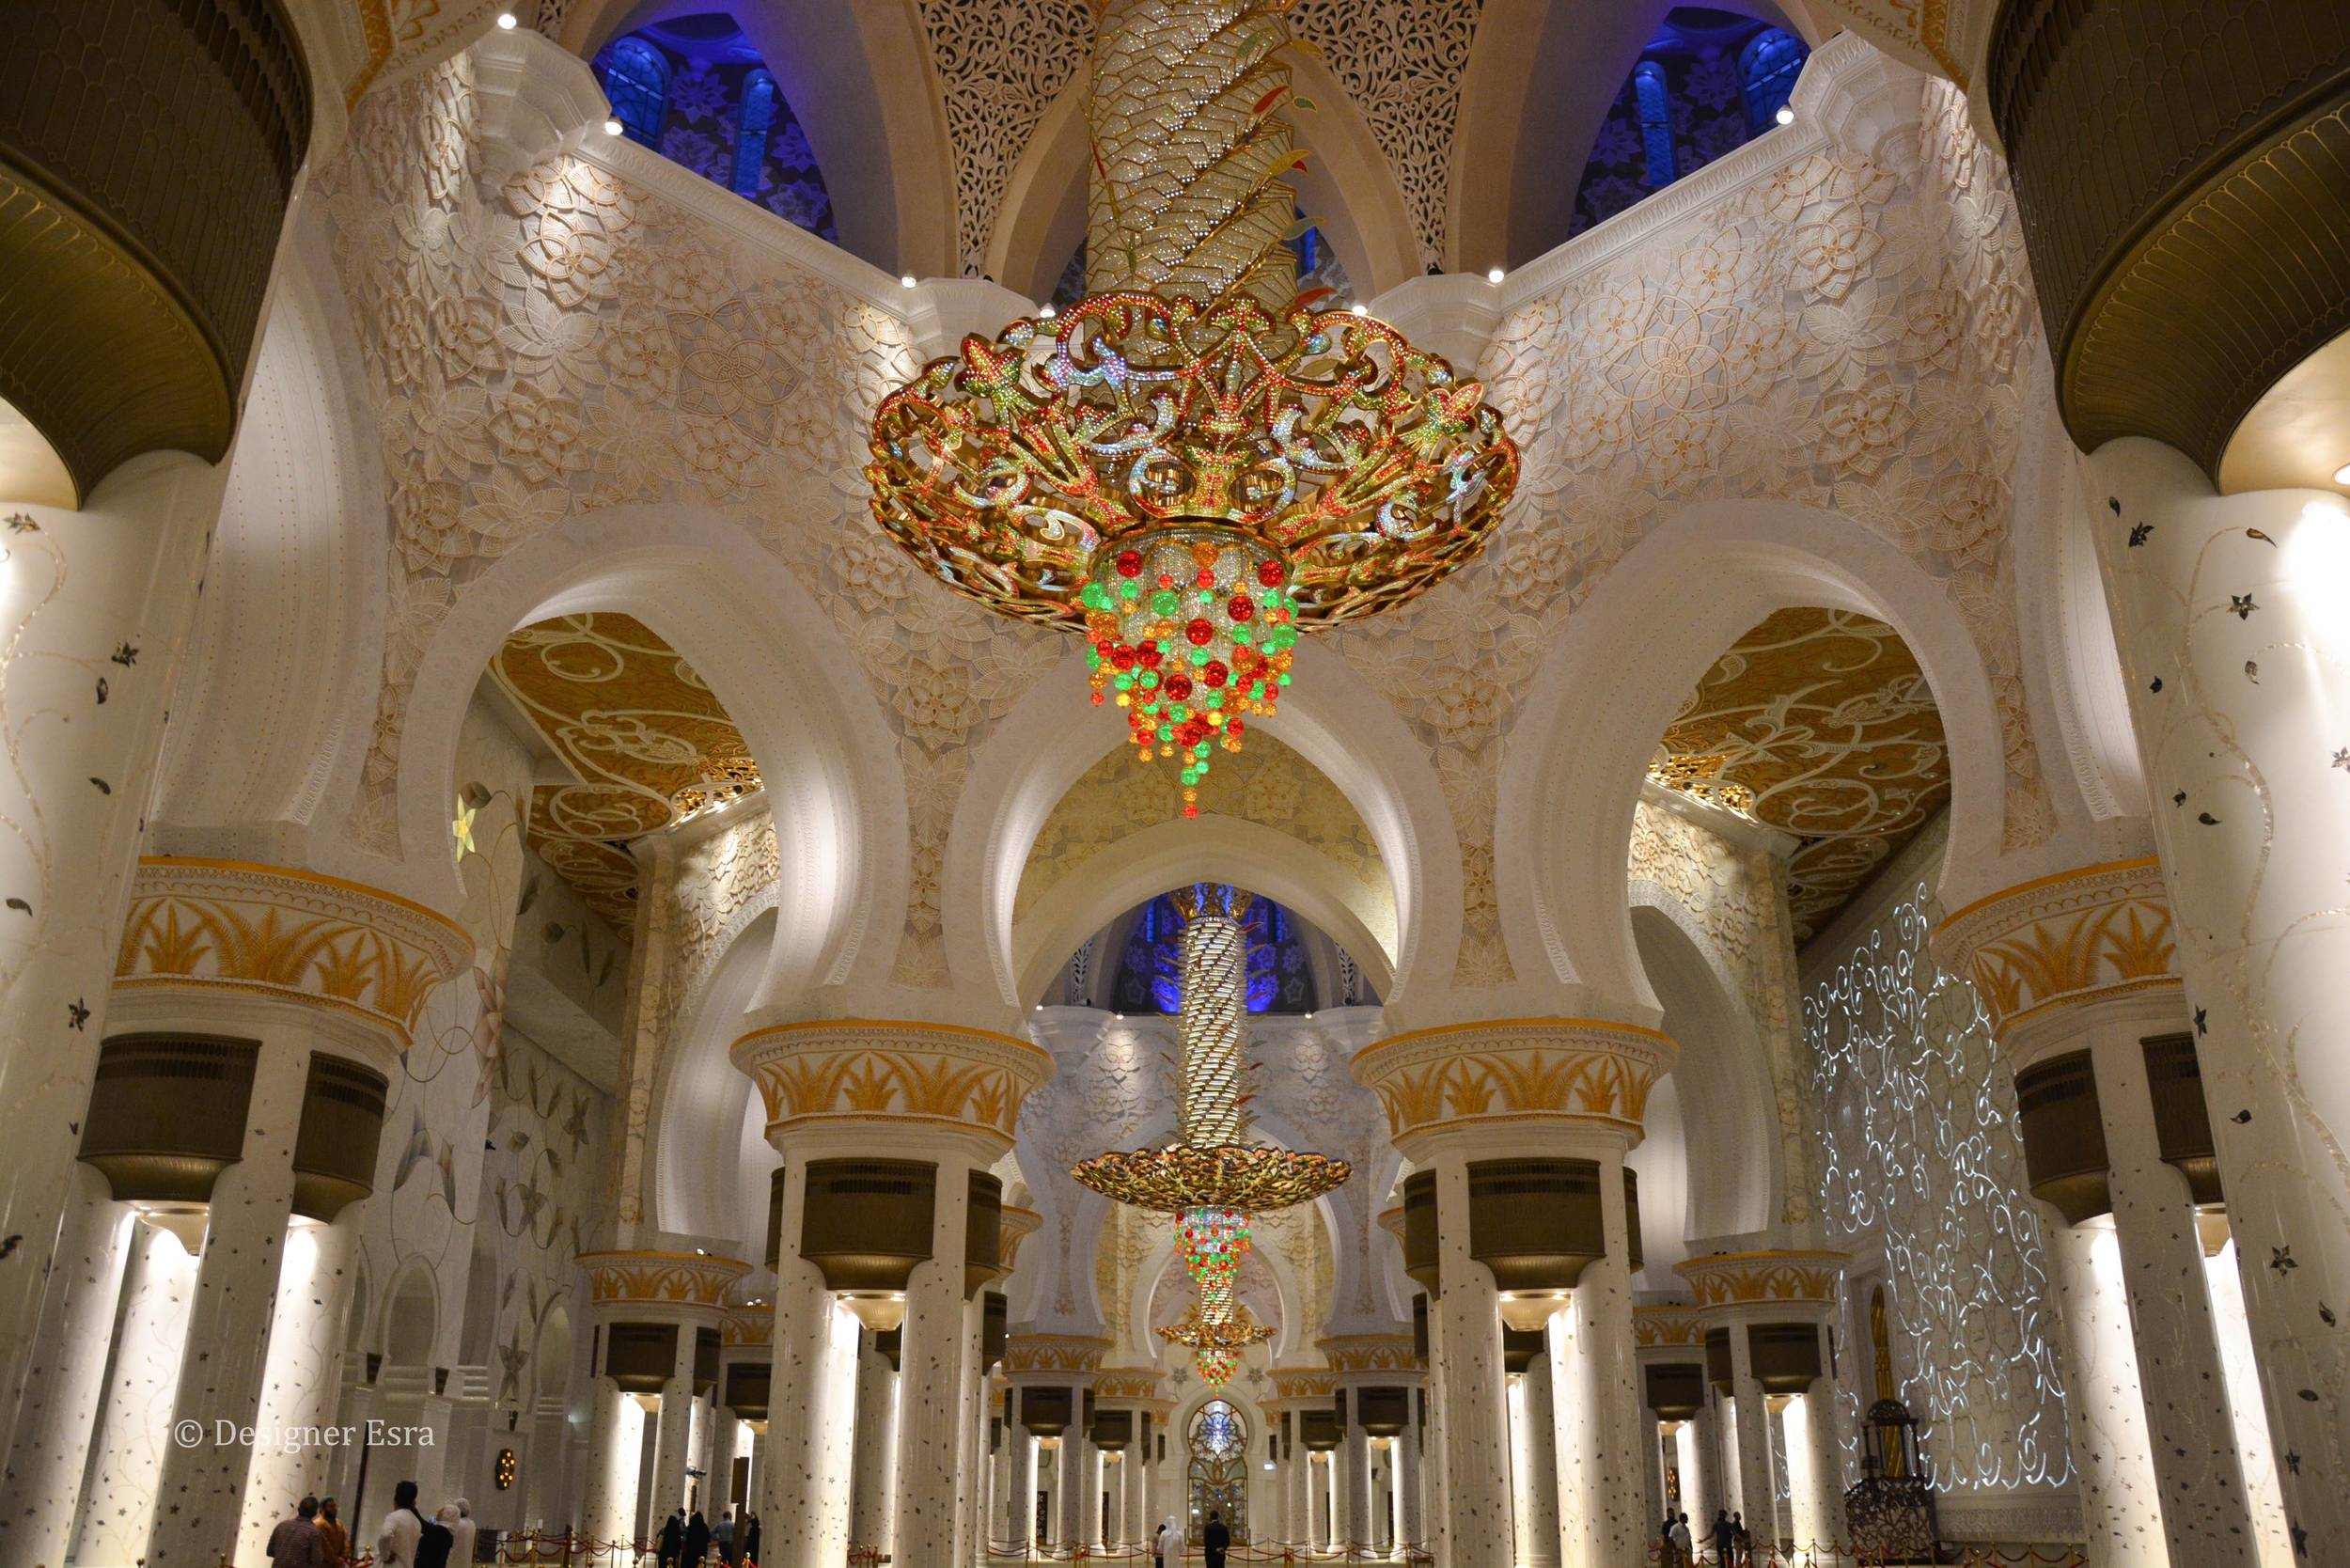 The interior design of Sheikh Zayed Grand Mosque